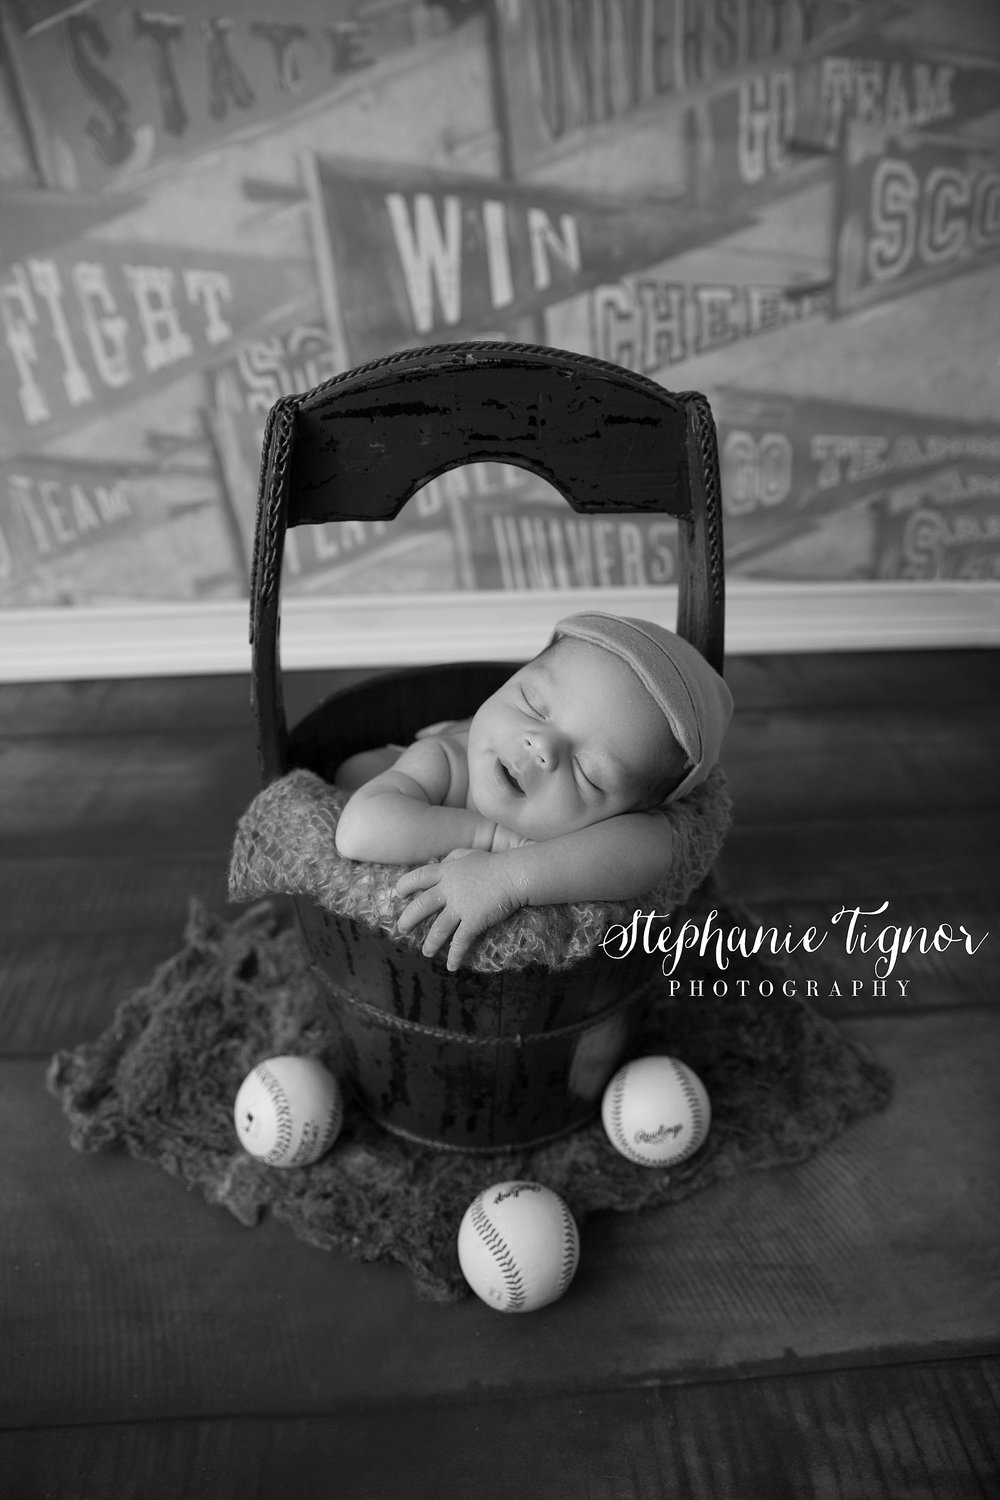 Stephanie Tignor Photography | Fredericksburg VA Newborn Photographer | Warrenton VA Newborn Photographer | Stafford VA Newborn Photographer | Newborn Photographer